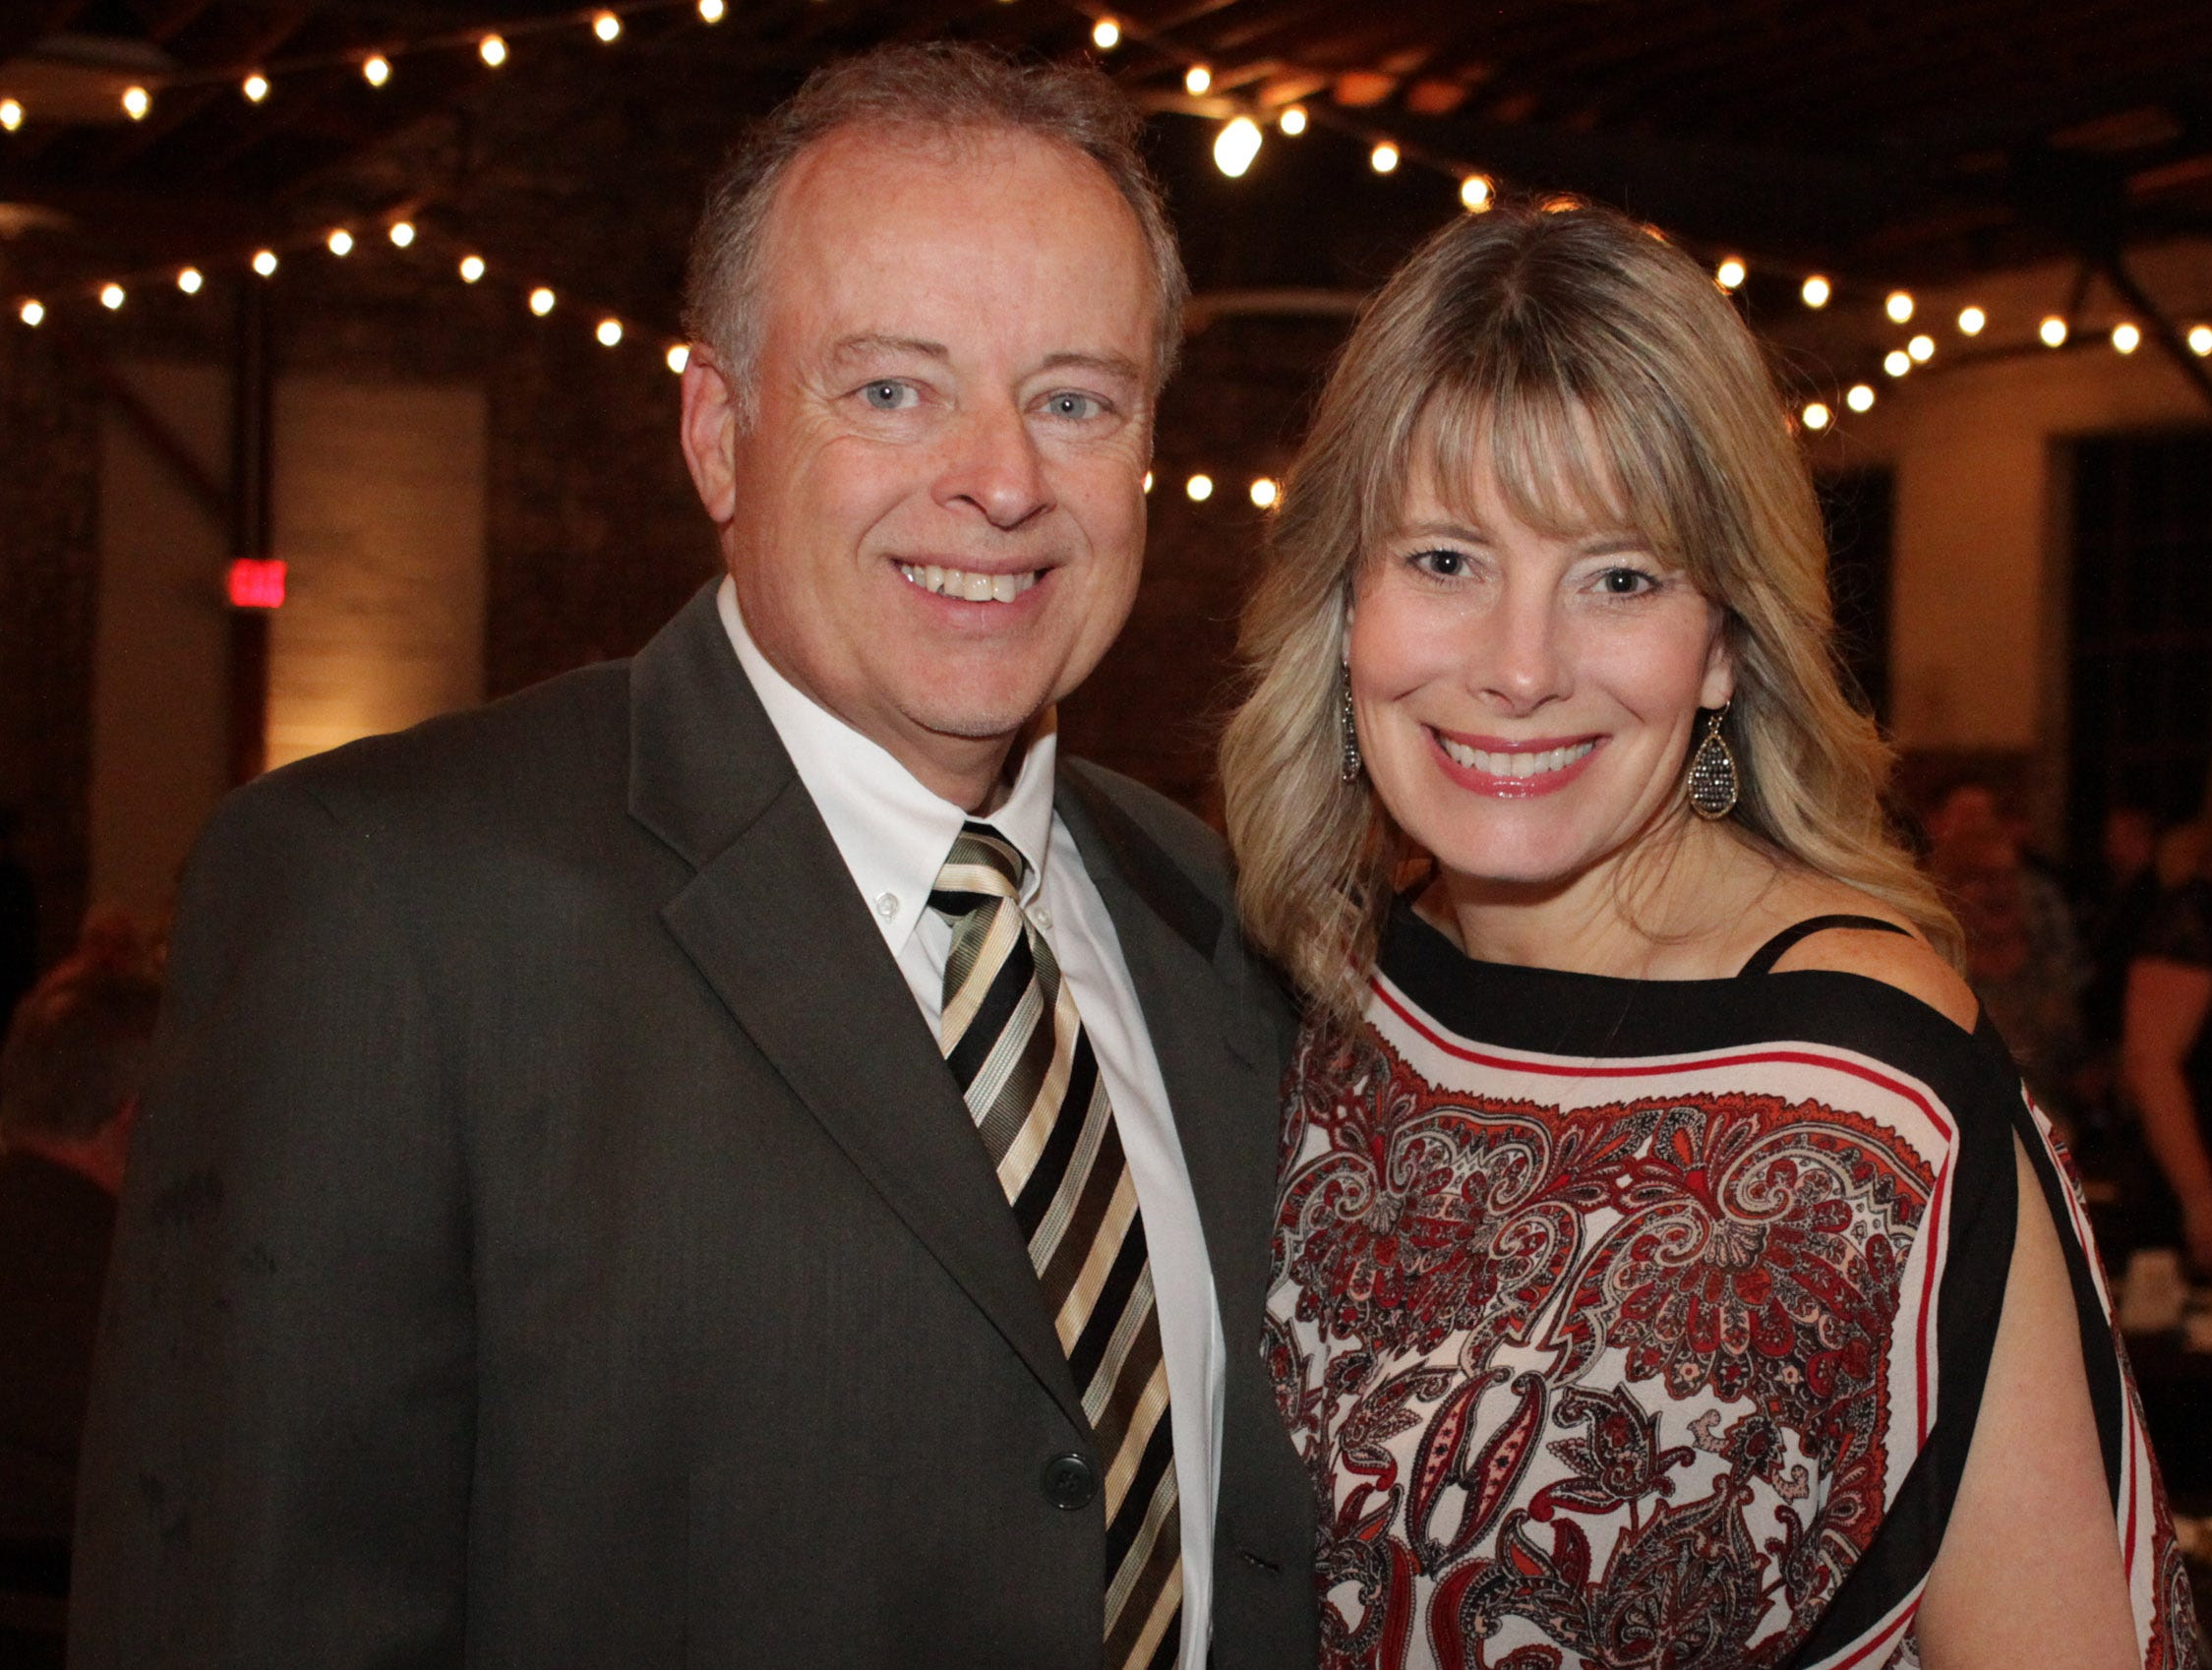 Al and Deanne Dewitt and the Green and Gold Gala benefitting Gallatin High School on Saturday, March 9. 2019.